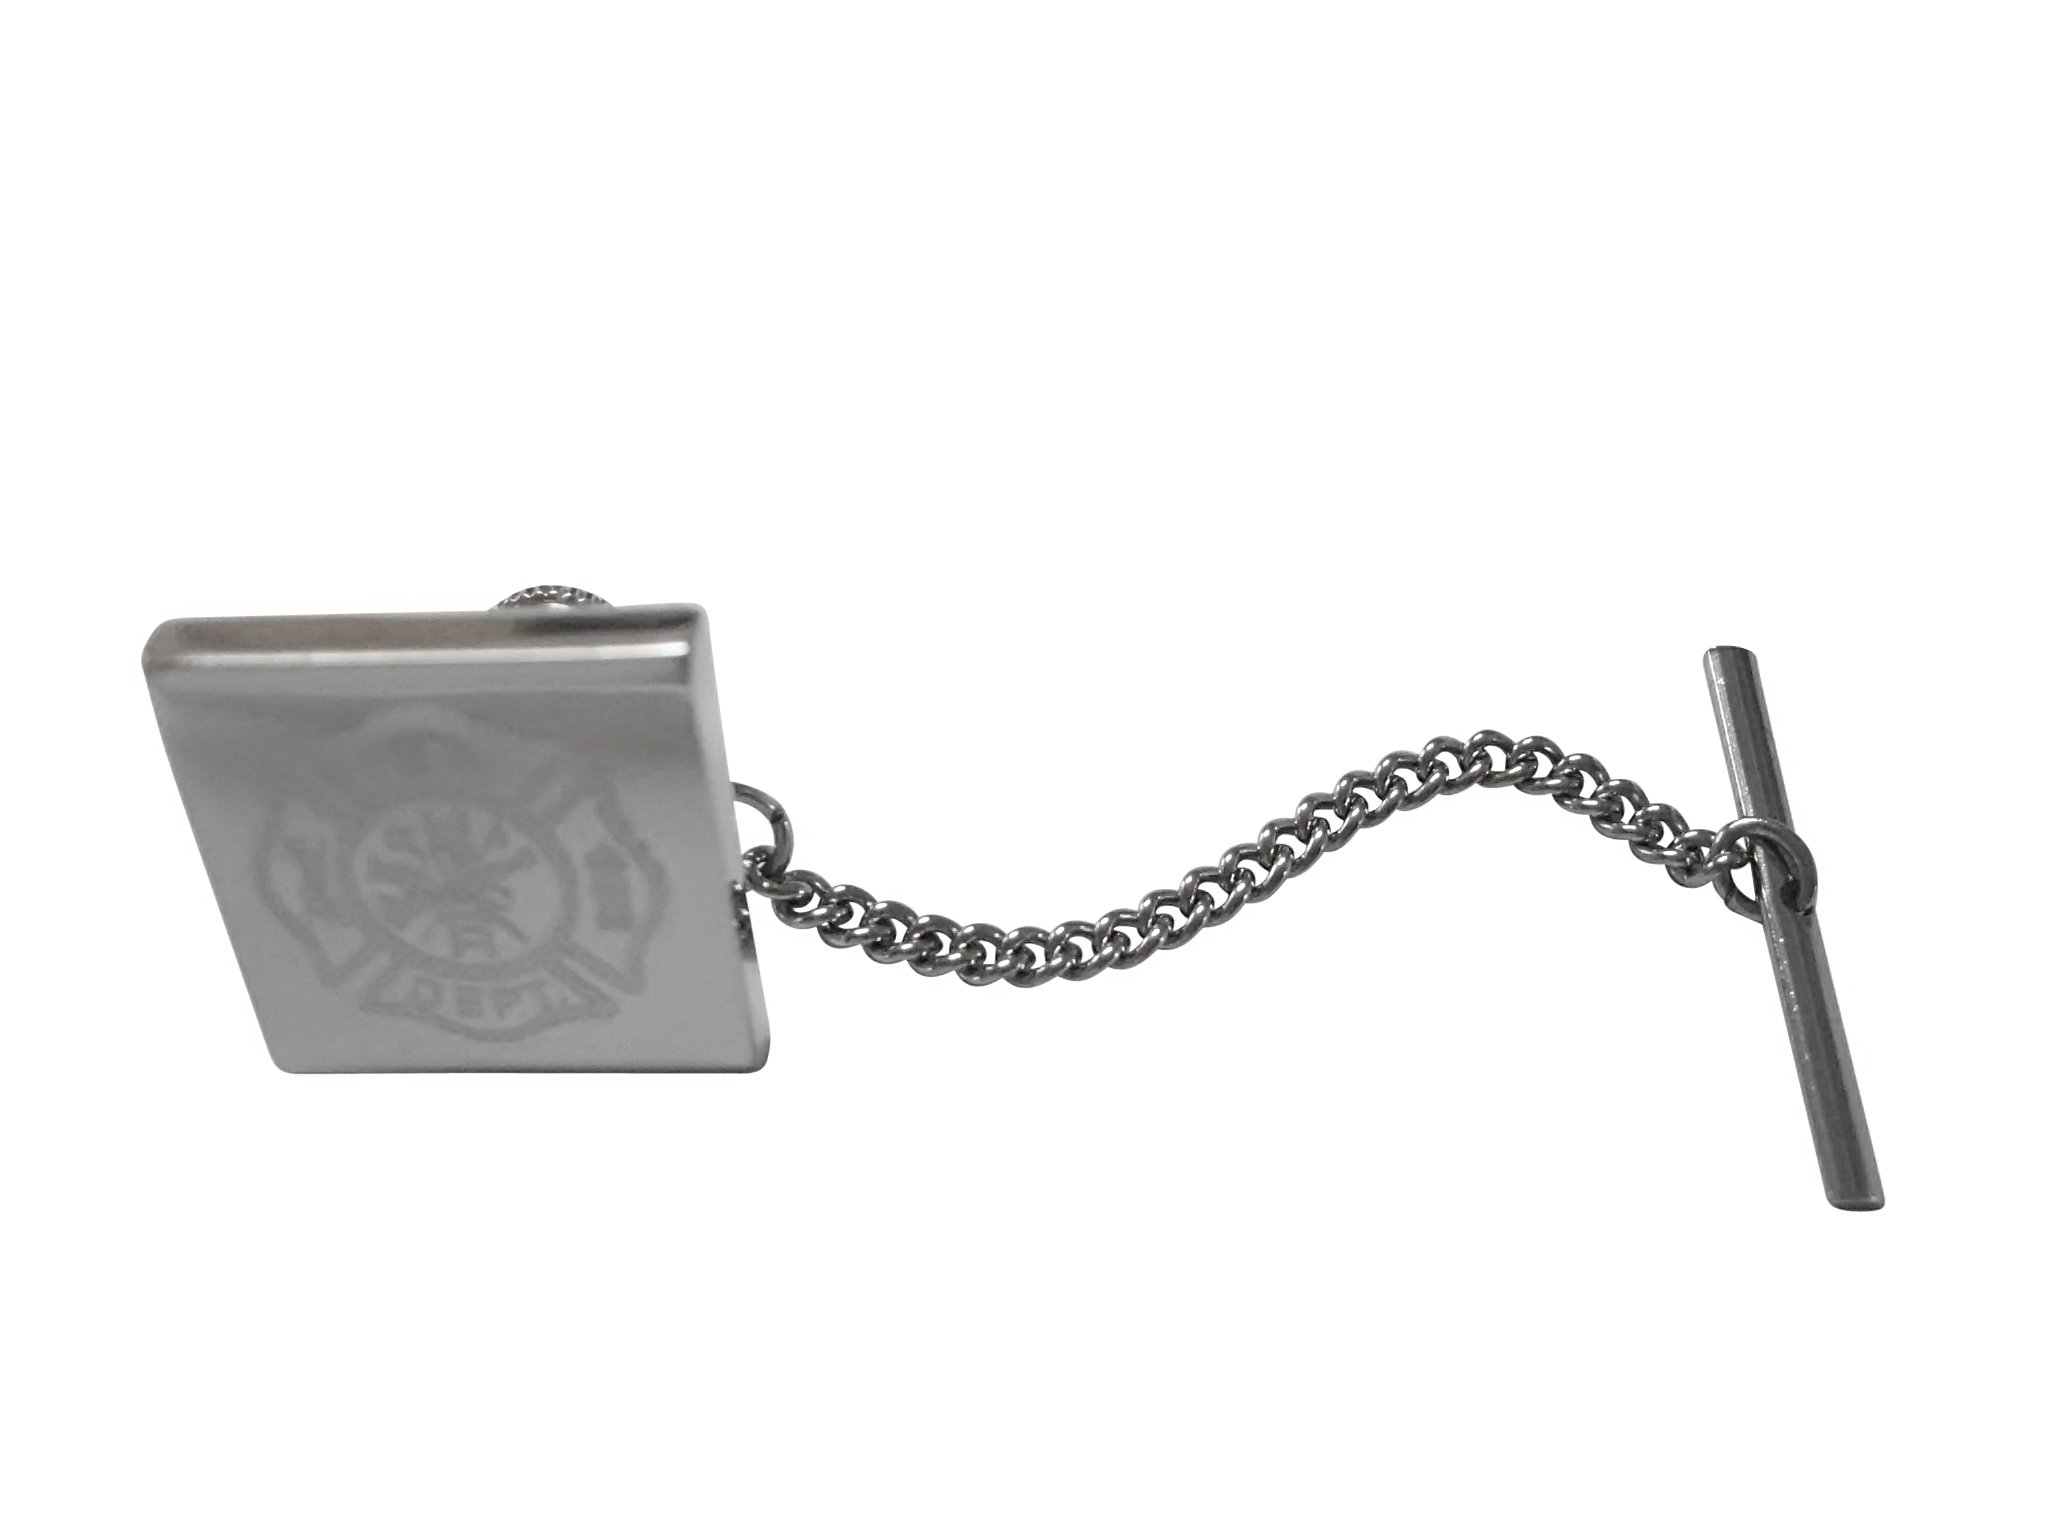 Silver Toned Etched Fire Fighter Emblem Tie Tack